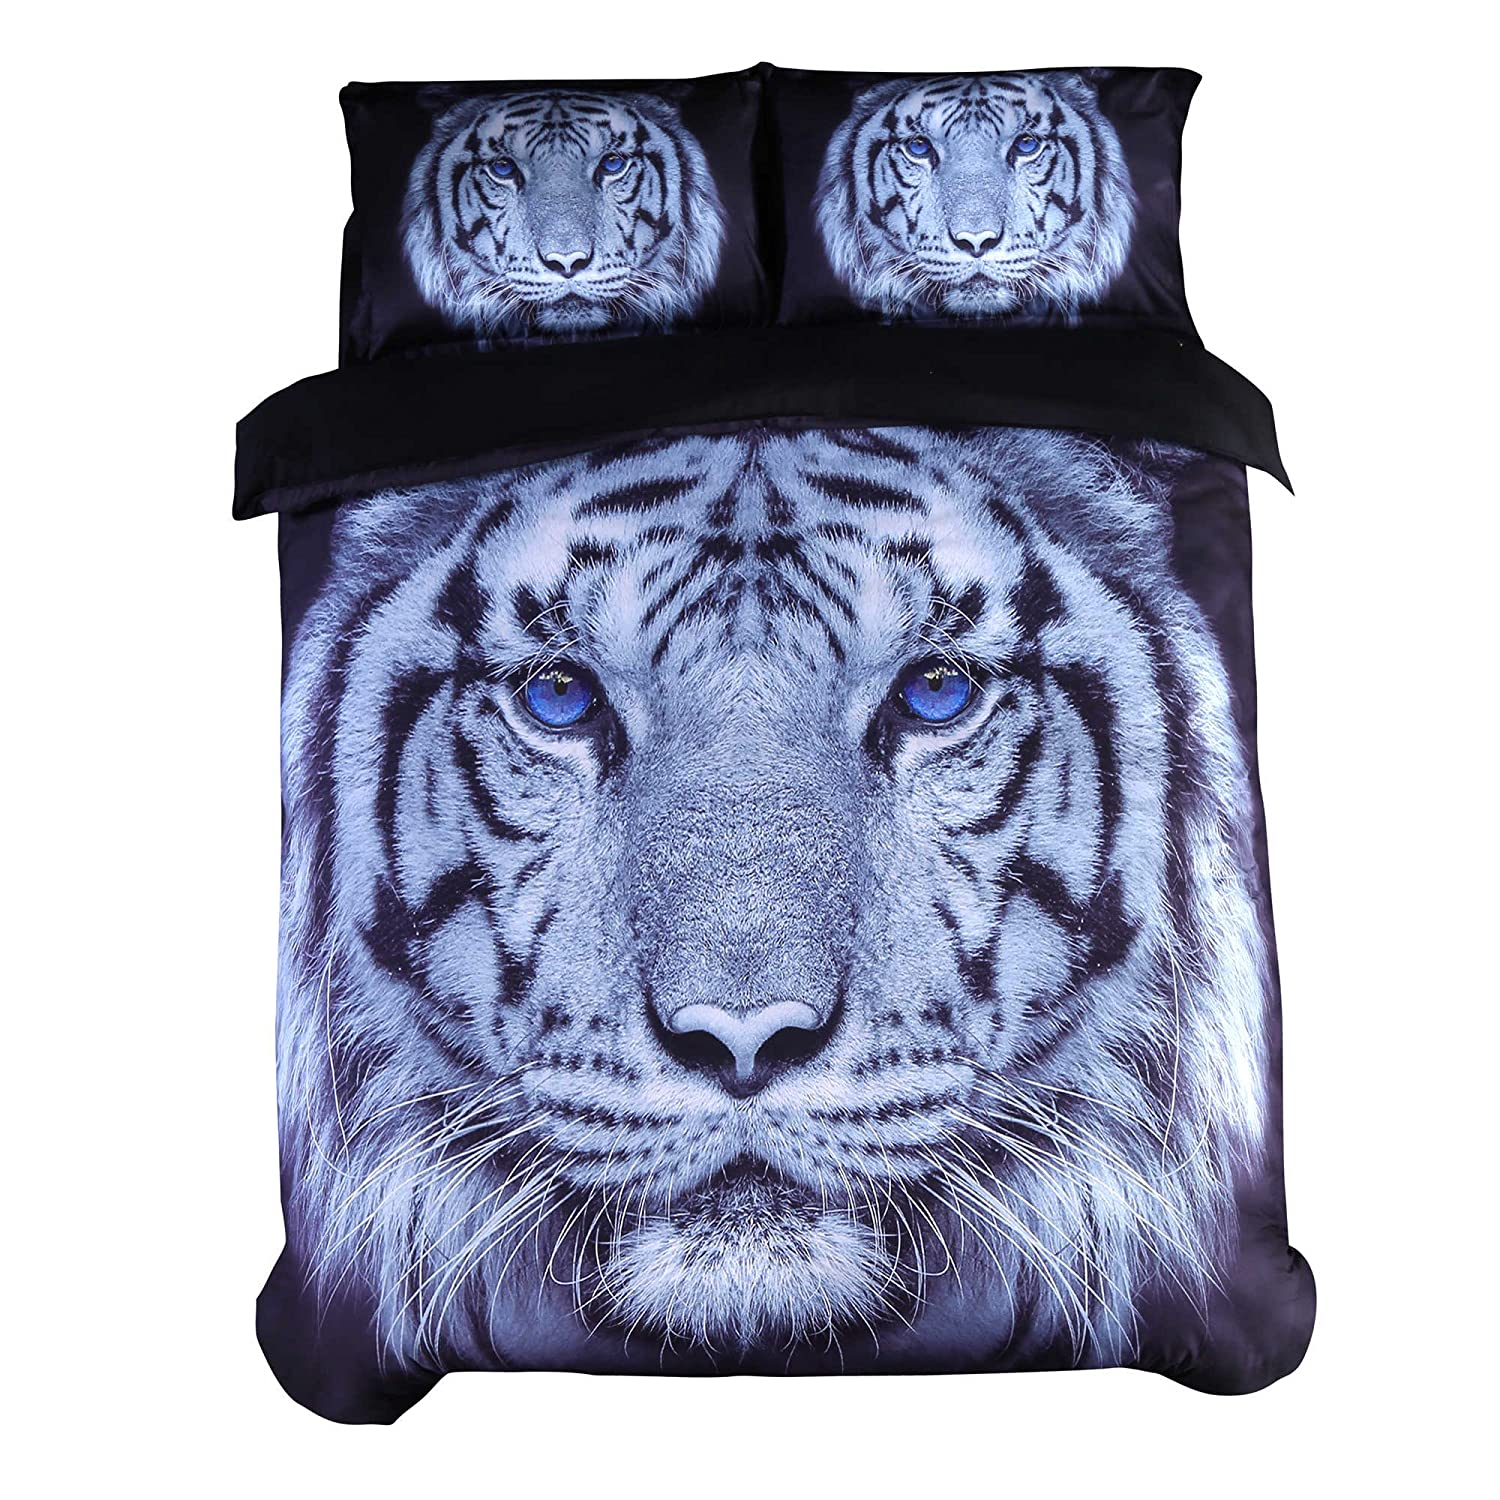 ENCOFT 3D Tiger Bedding Large Tiger Head with Blue Eyes Printed 4 Pieces Duvet Cover Set, Cotton Tencel Blend Black Bedding (Queen)